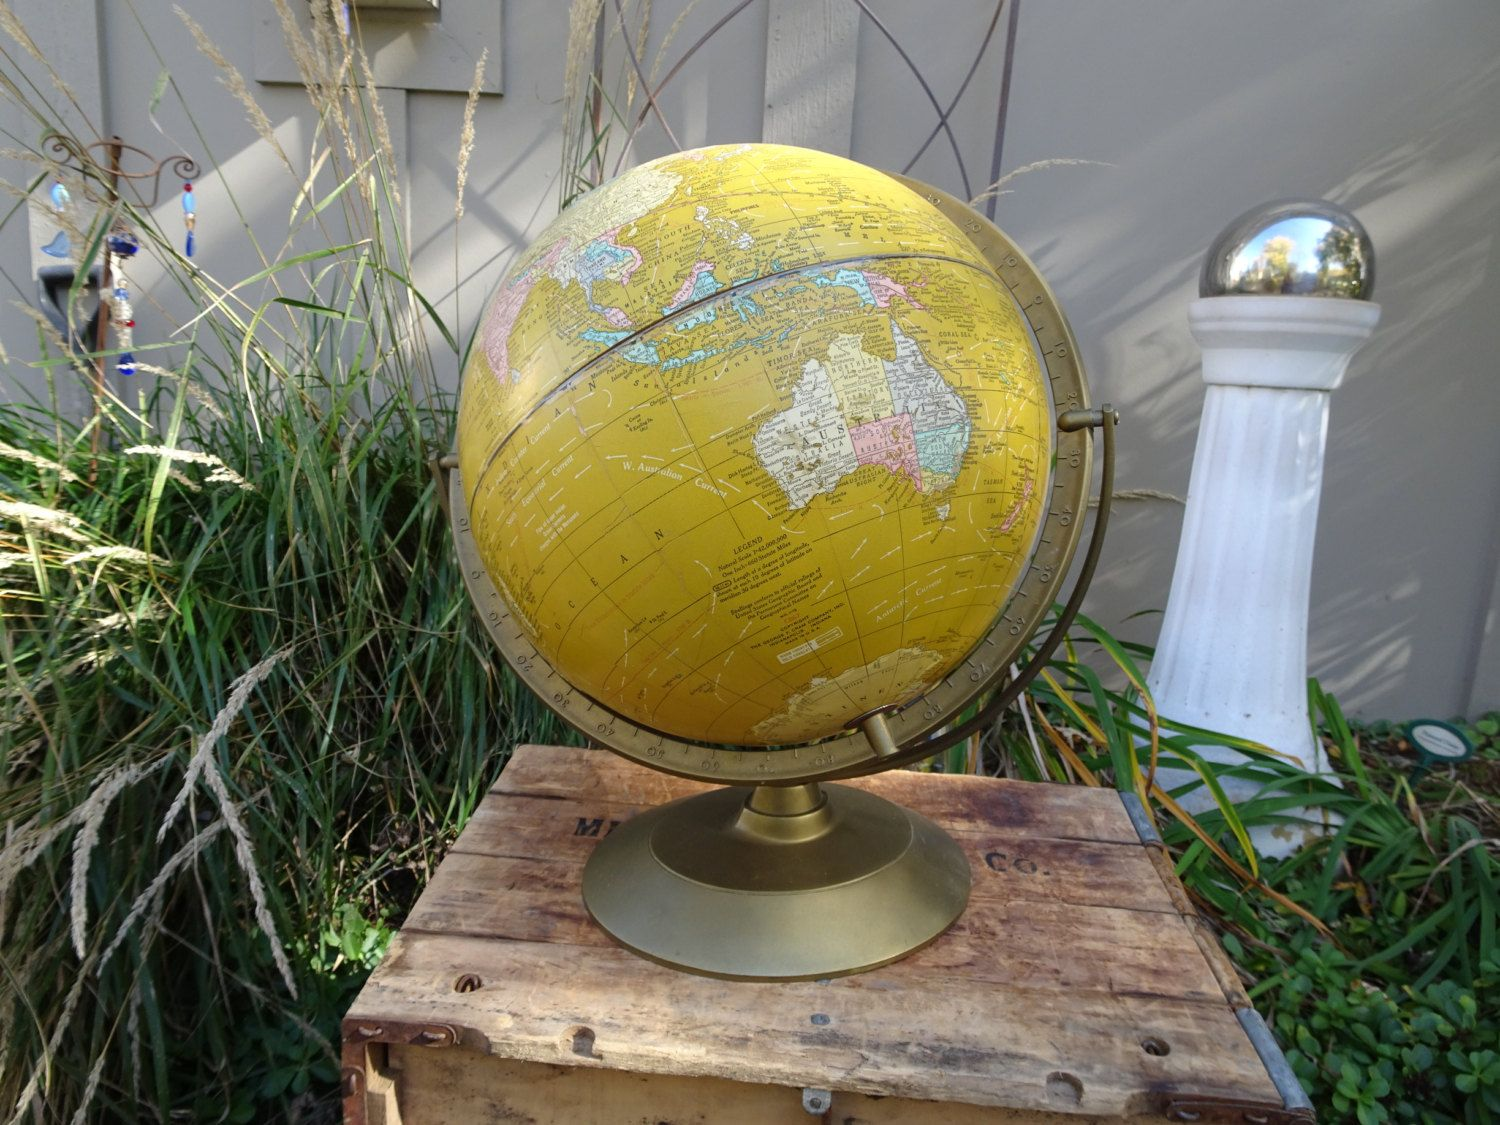 Cramu0027s Imperial 12 Inch World Globe | Vintage Globe | Imperial World Globe  | Office Decor